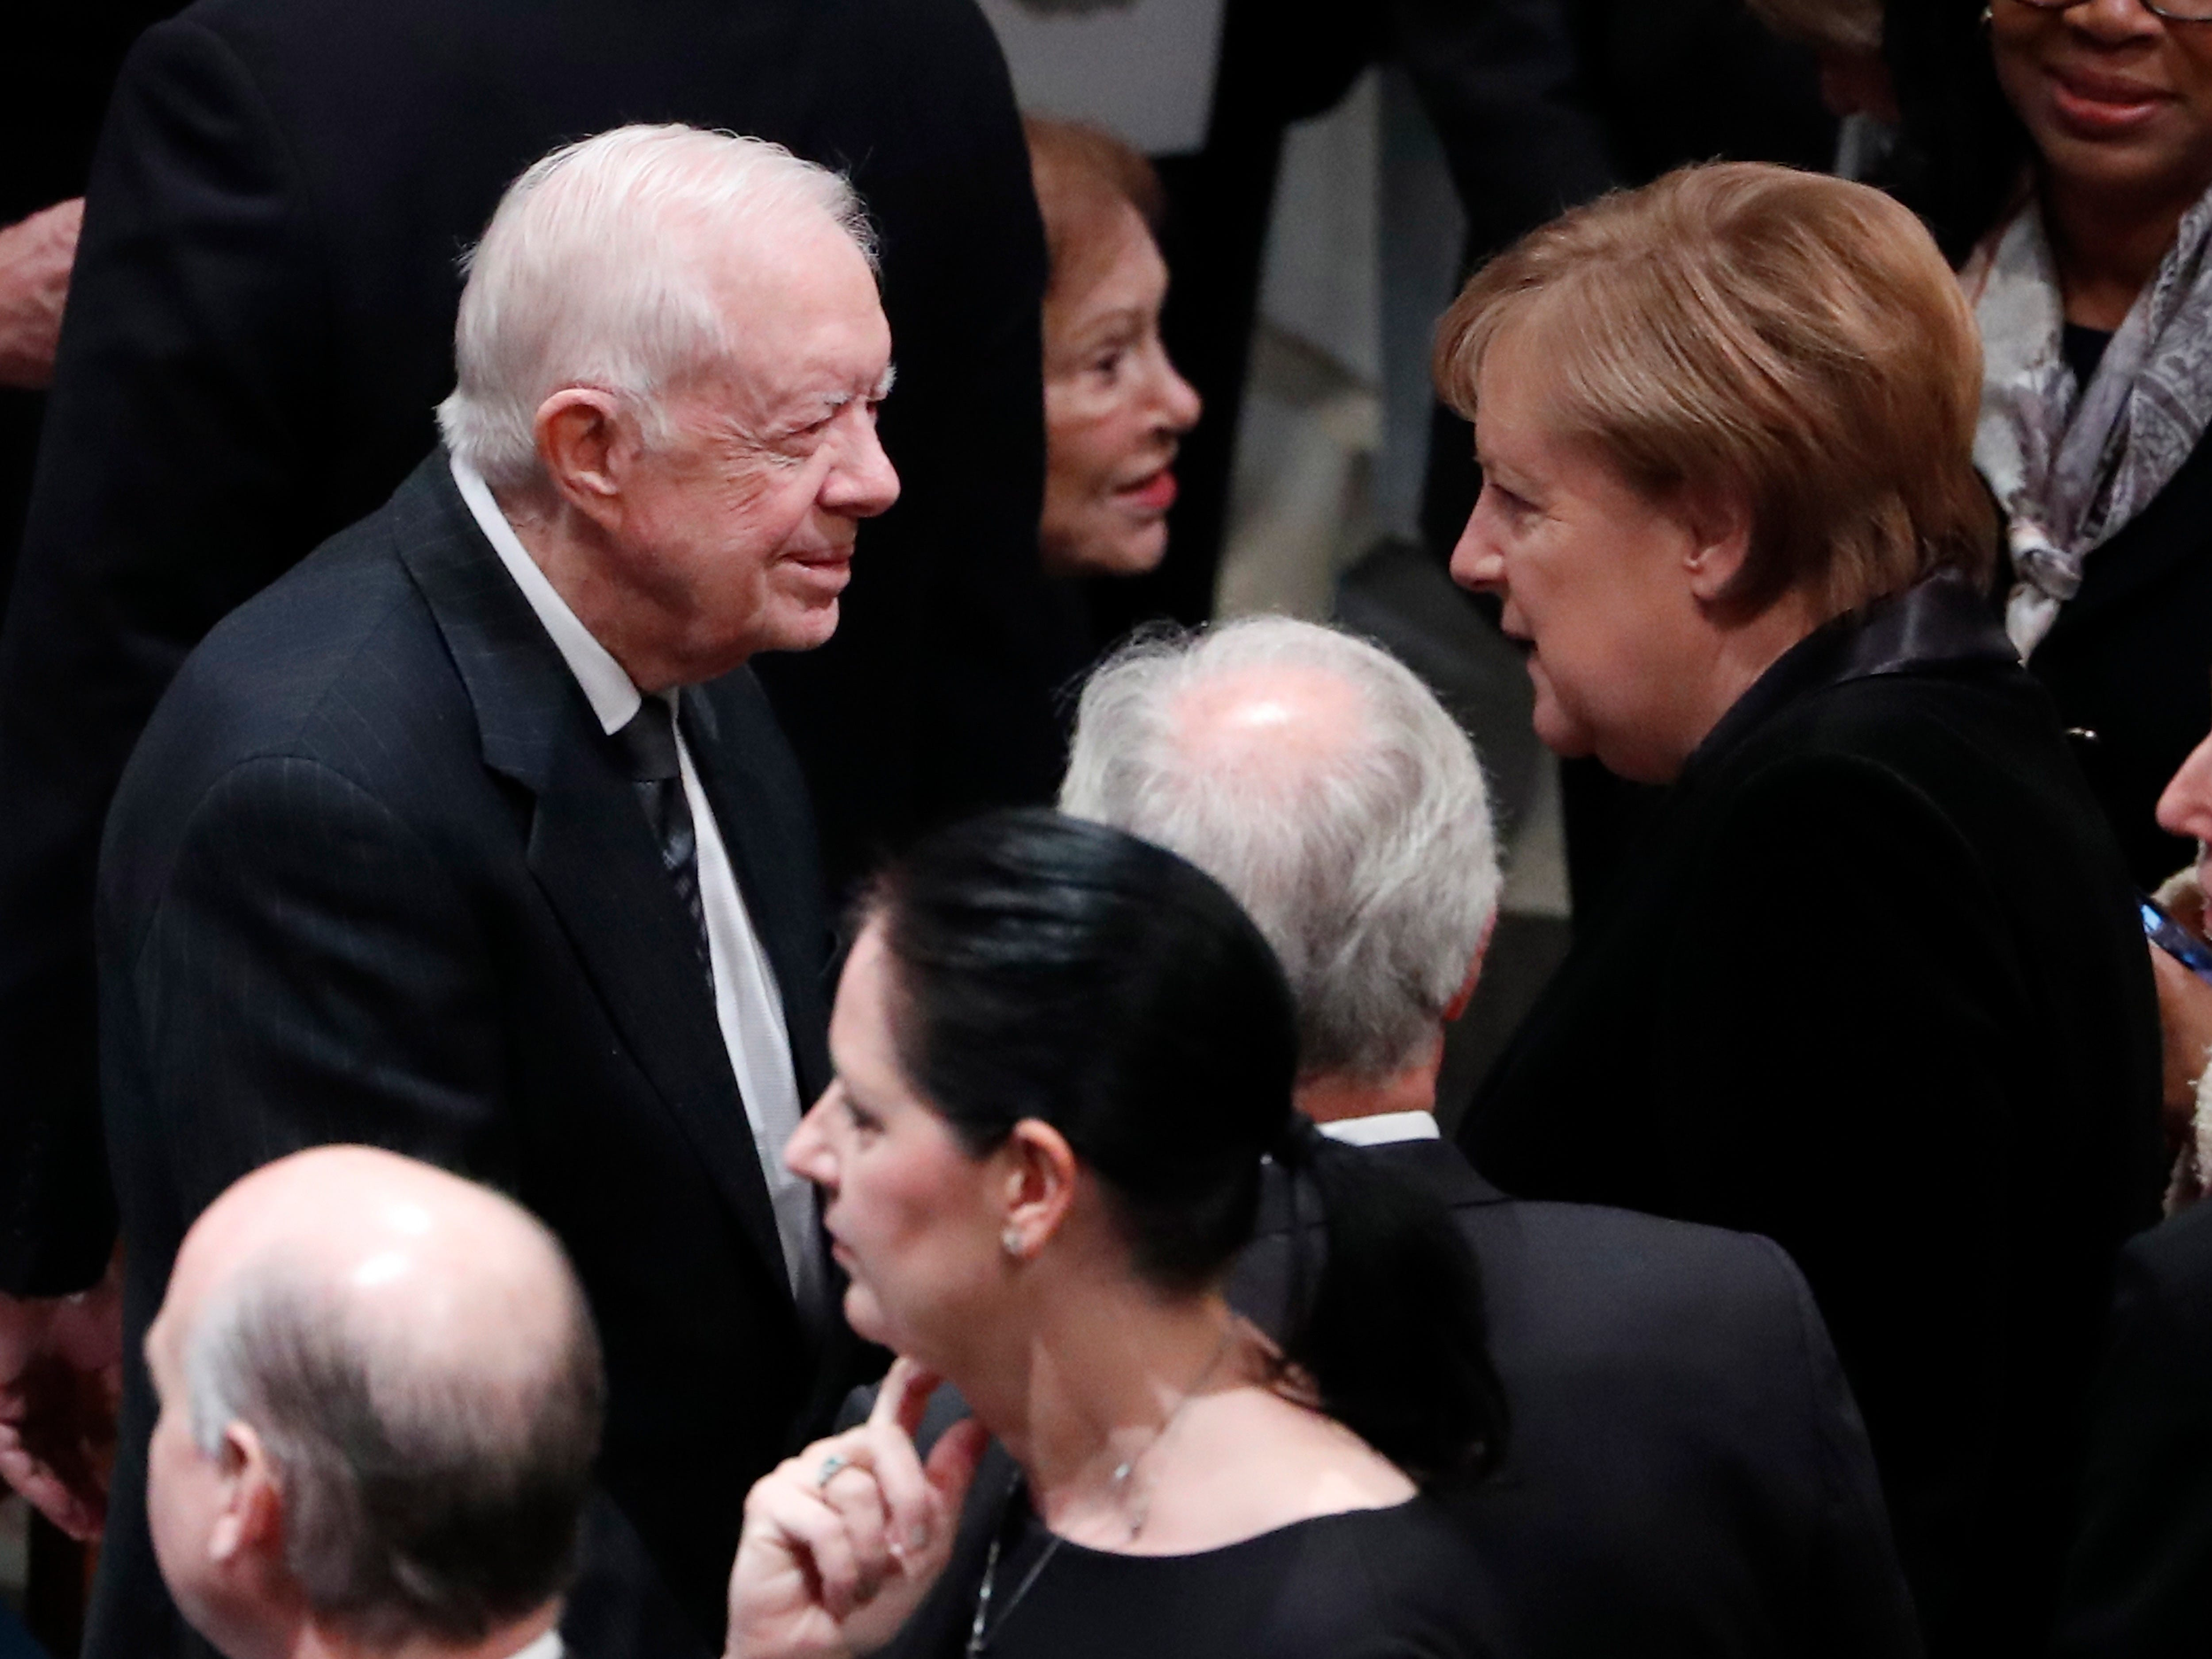 Former President Jimmy Carter, left, talks with German Chancellor Angela Merkel as they arrive for the funeral services for former President George H. W. Bush at the National Cathedral, in Washington, Dec. 5, 2018.